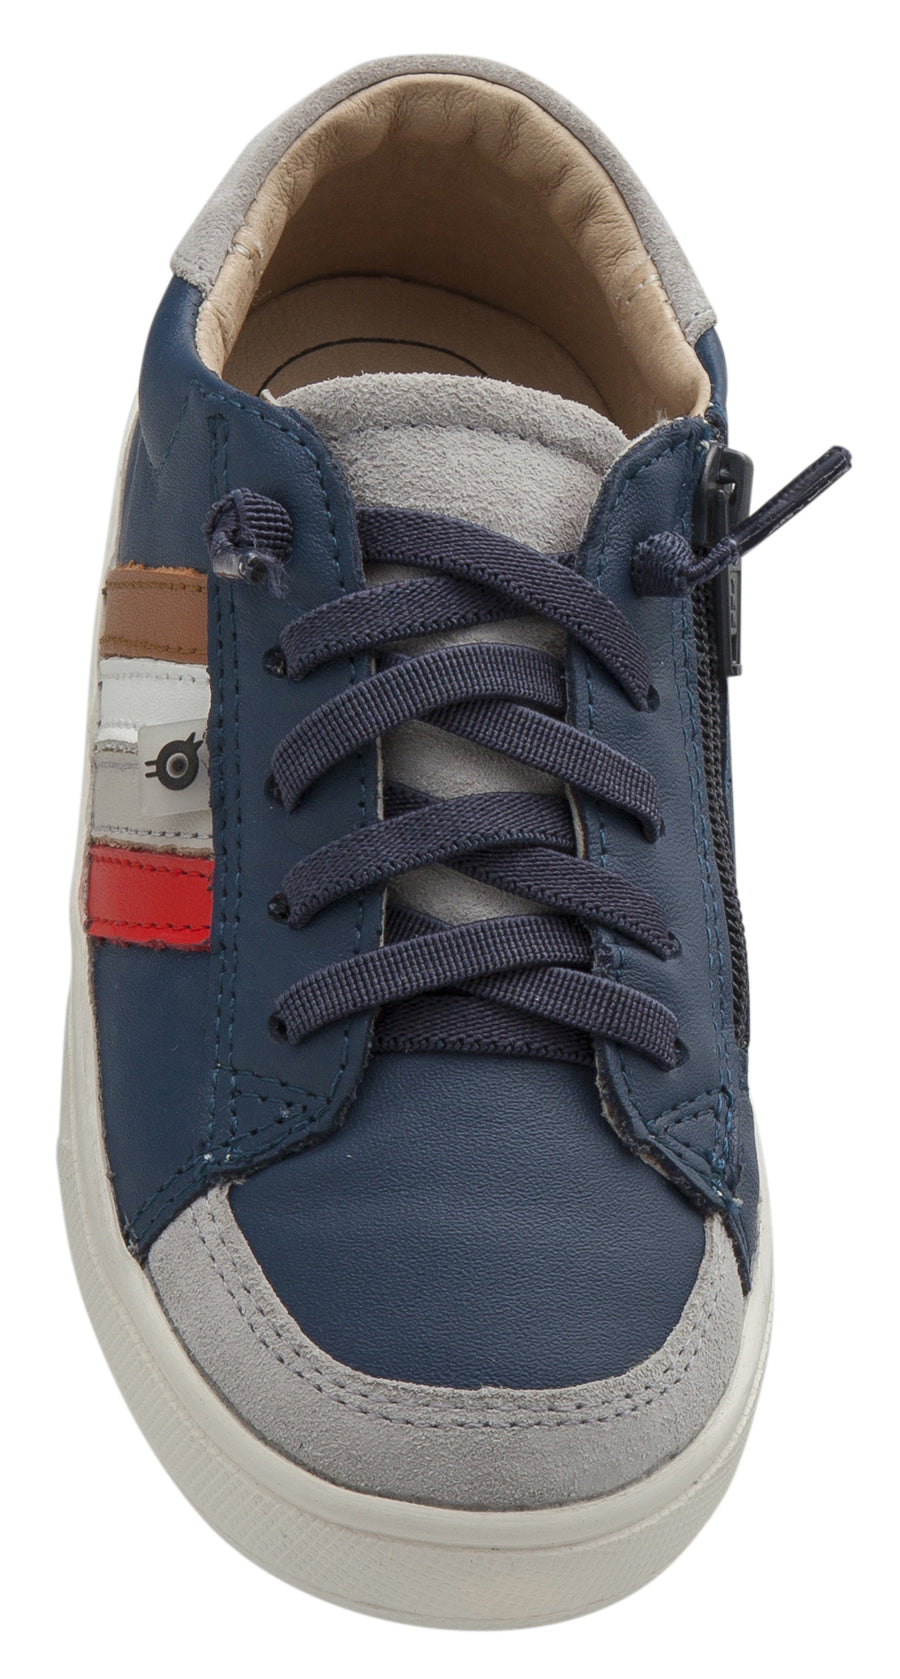 Old Soles Girl's Sneaky RB Leather Sneakers, Jeans/Bright Red/Gris/Snow/Tan